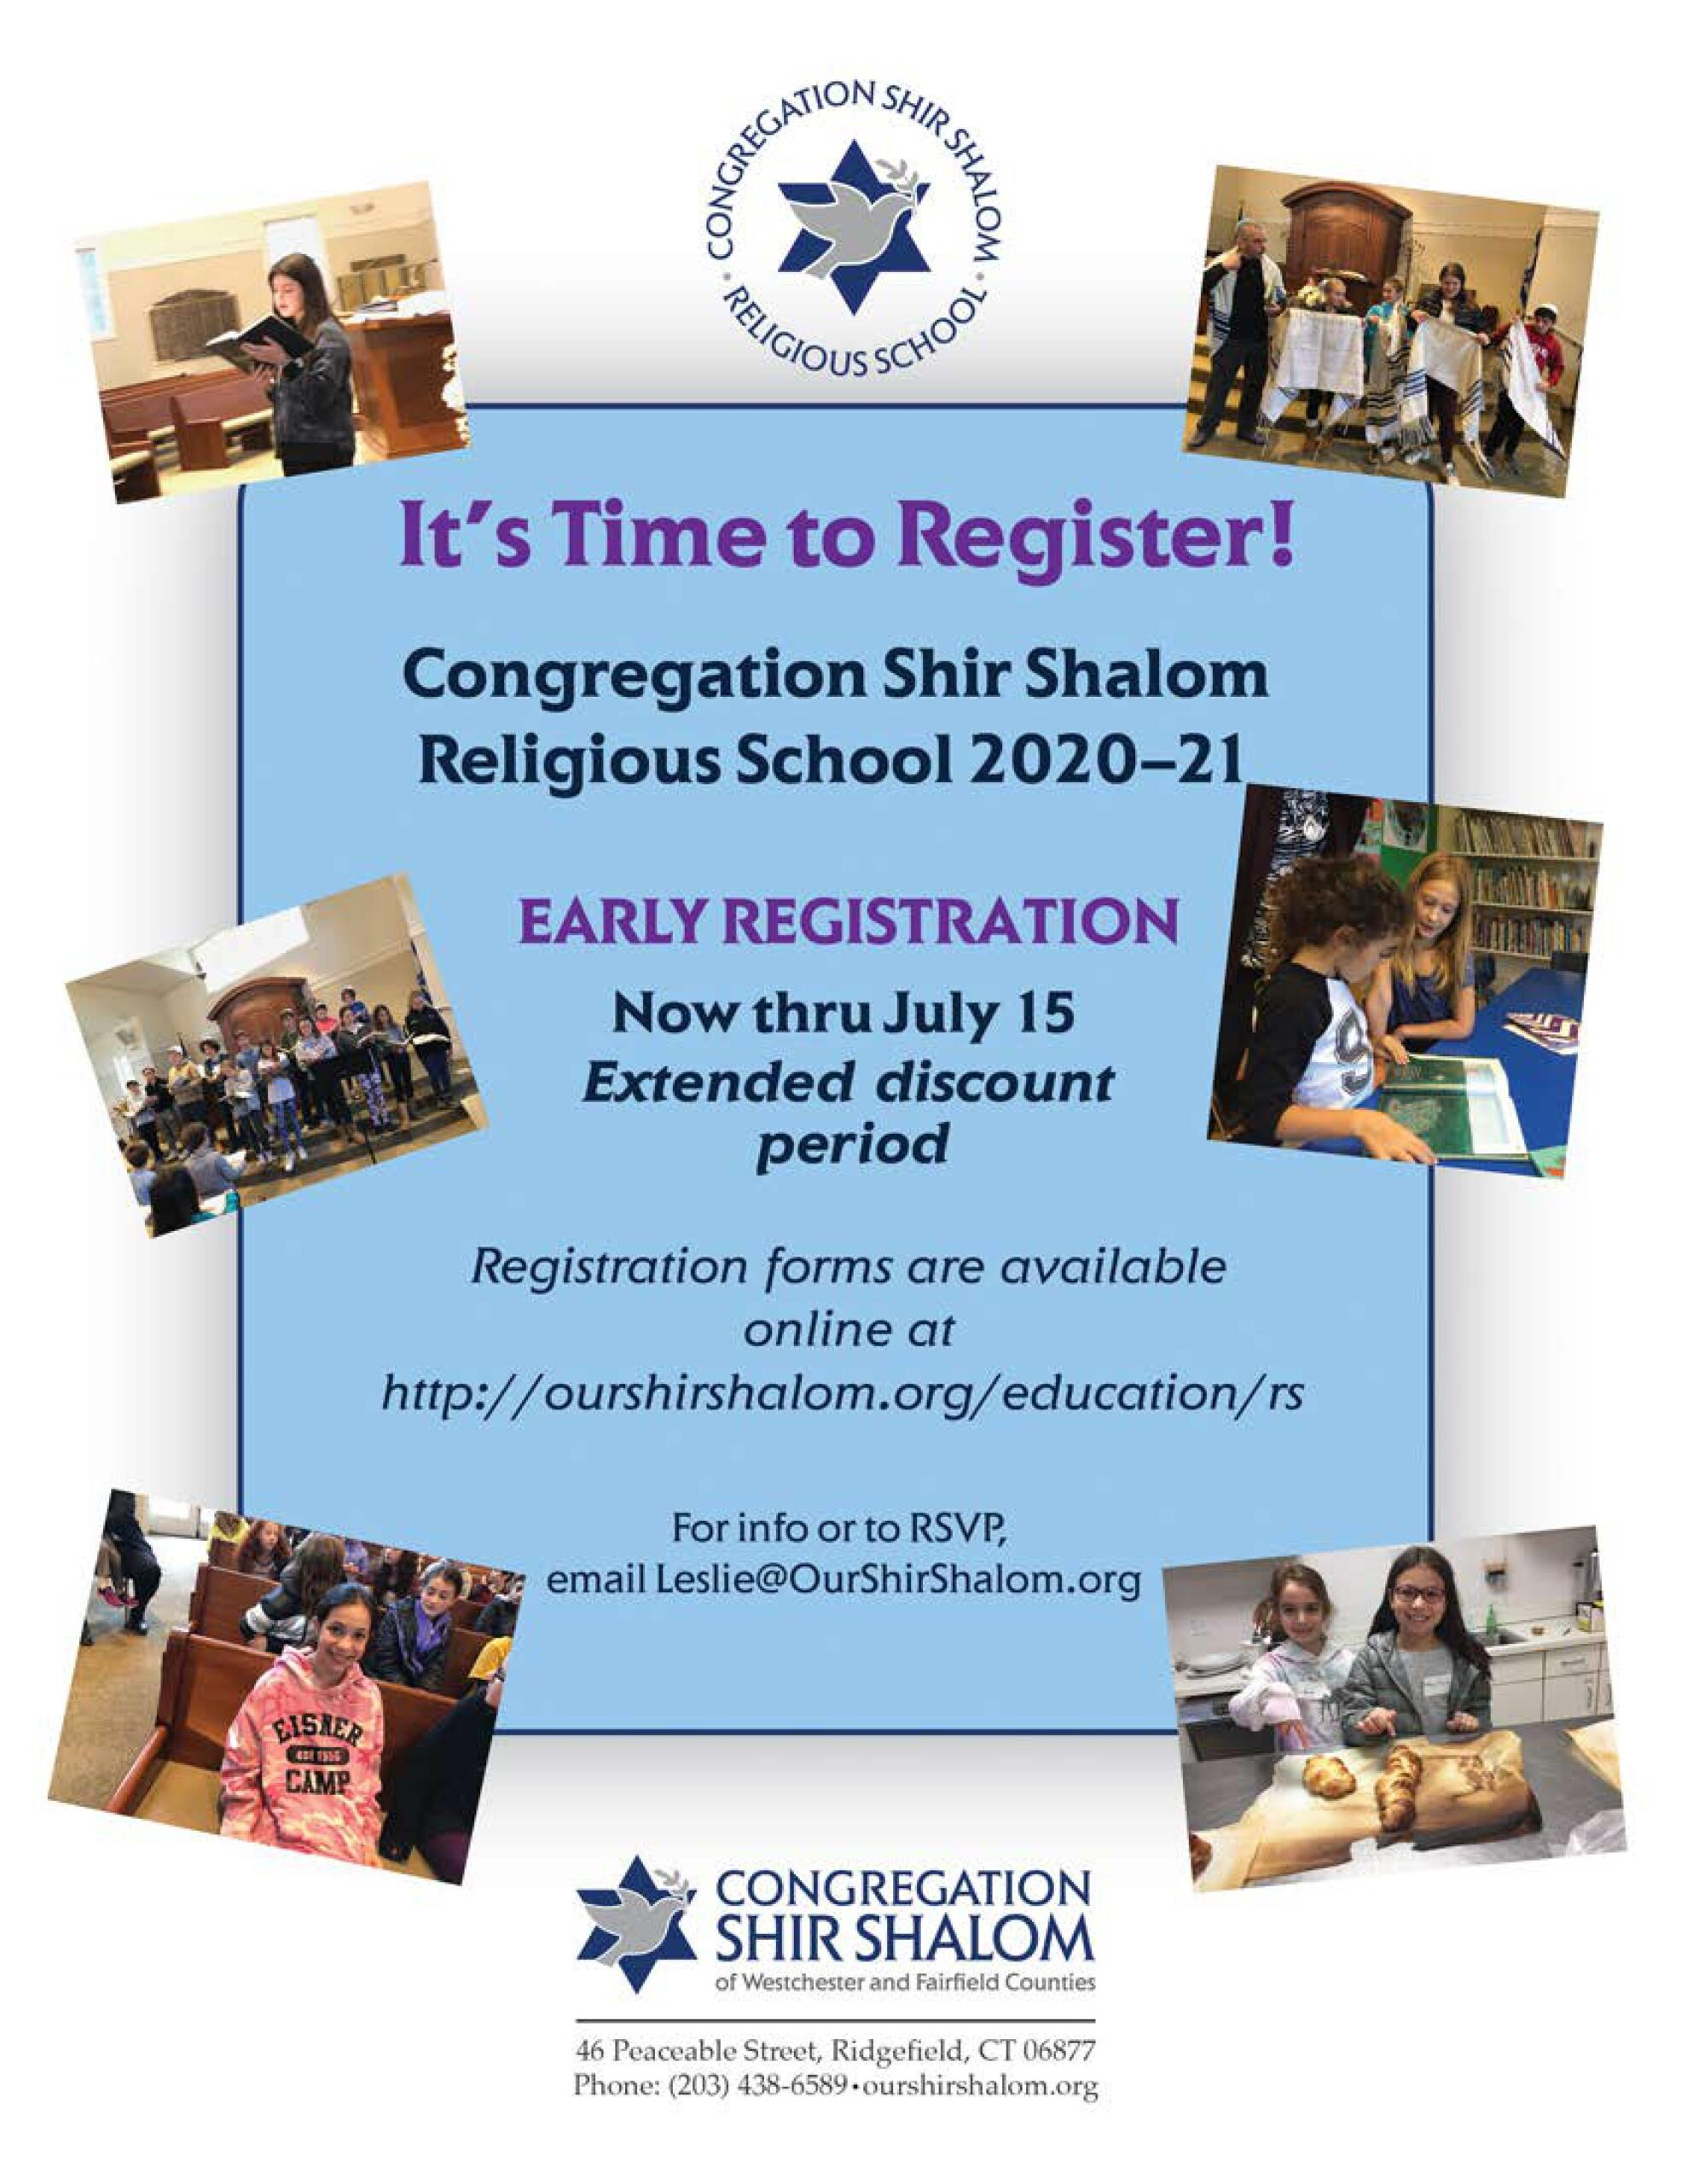 It's Time to Register - Early Registration - Now Through July 15 Click the image for the Registration Forms and Information